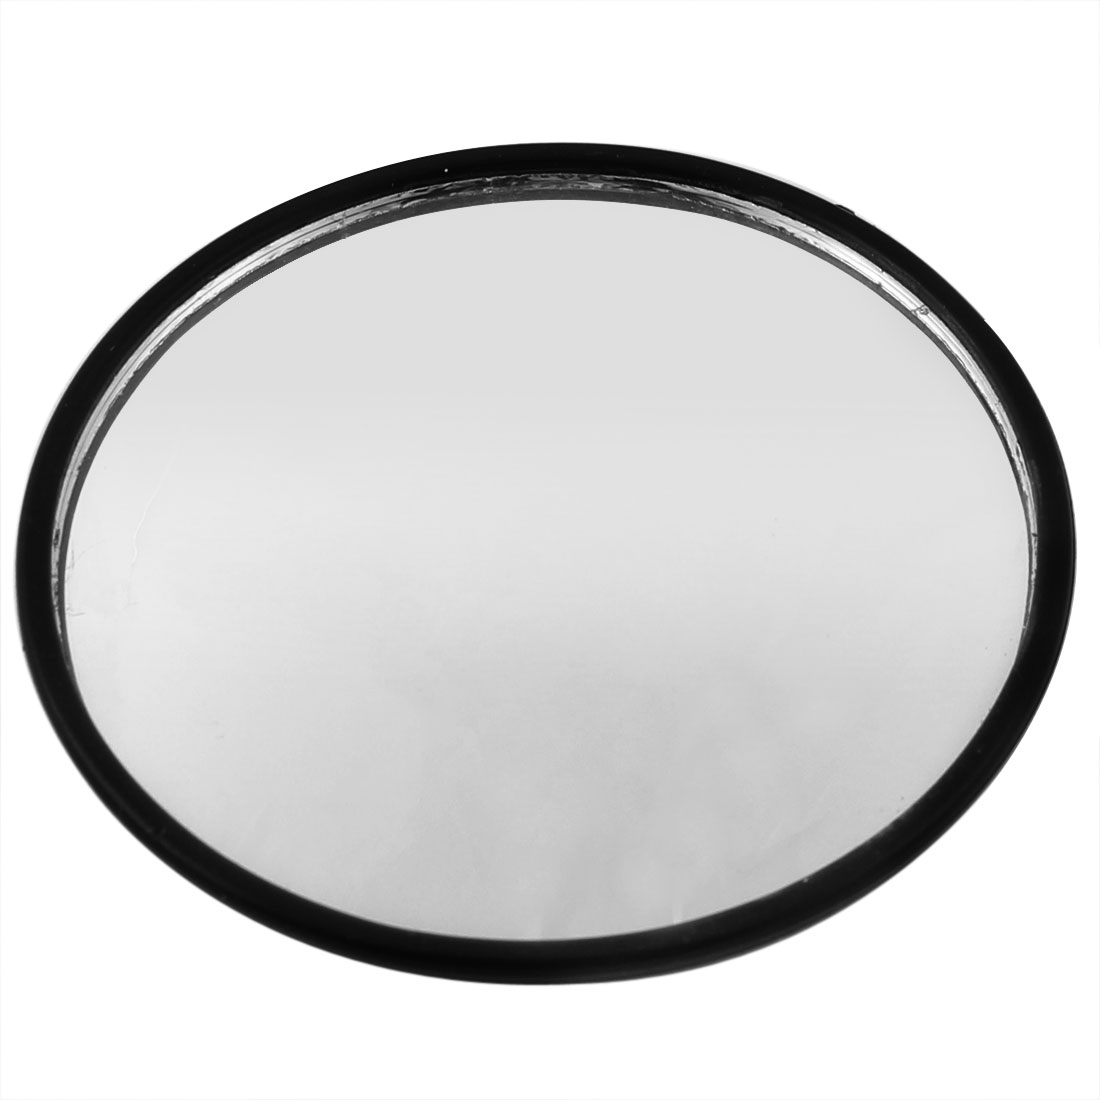 Sliver Tone Plastic Wide Angle Round Convex Blind Spot Mirror for Car Auto